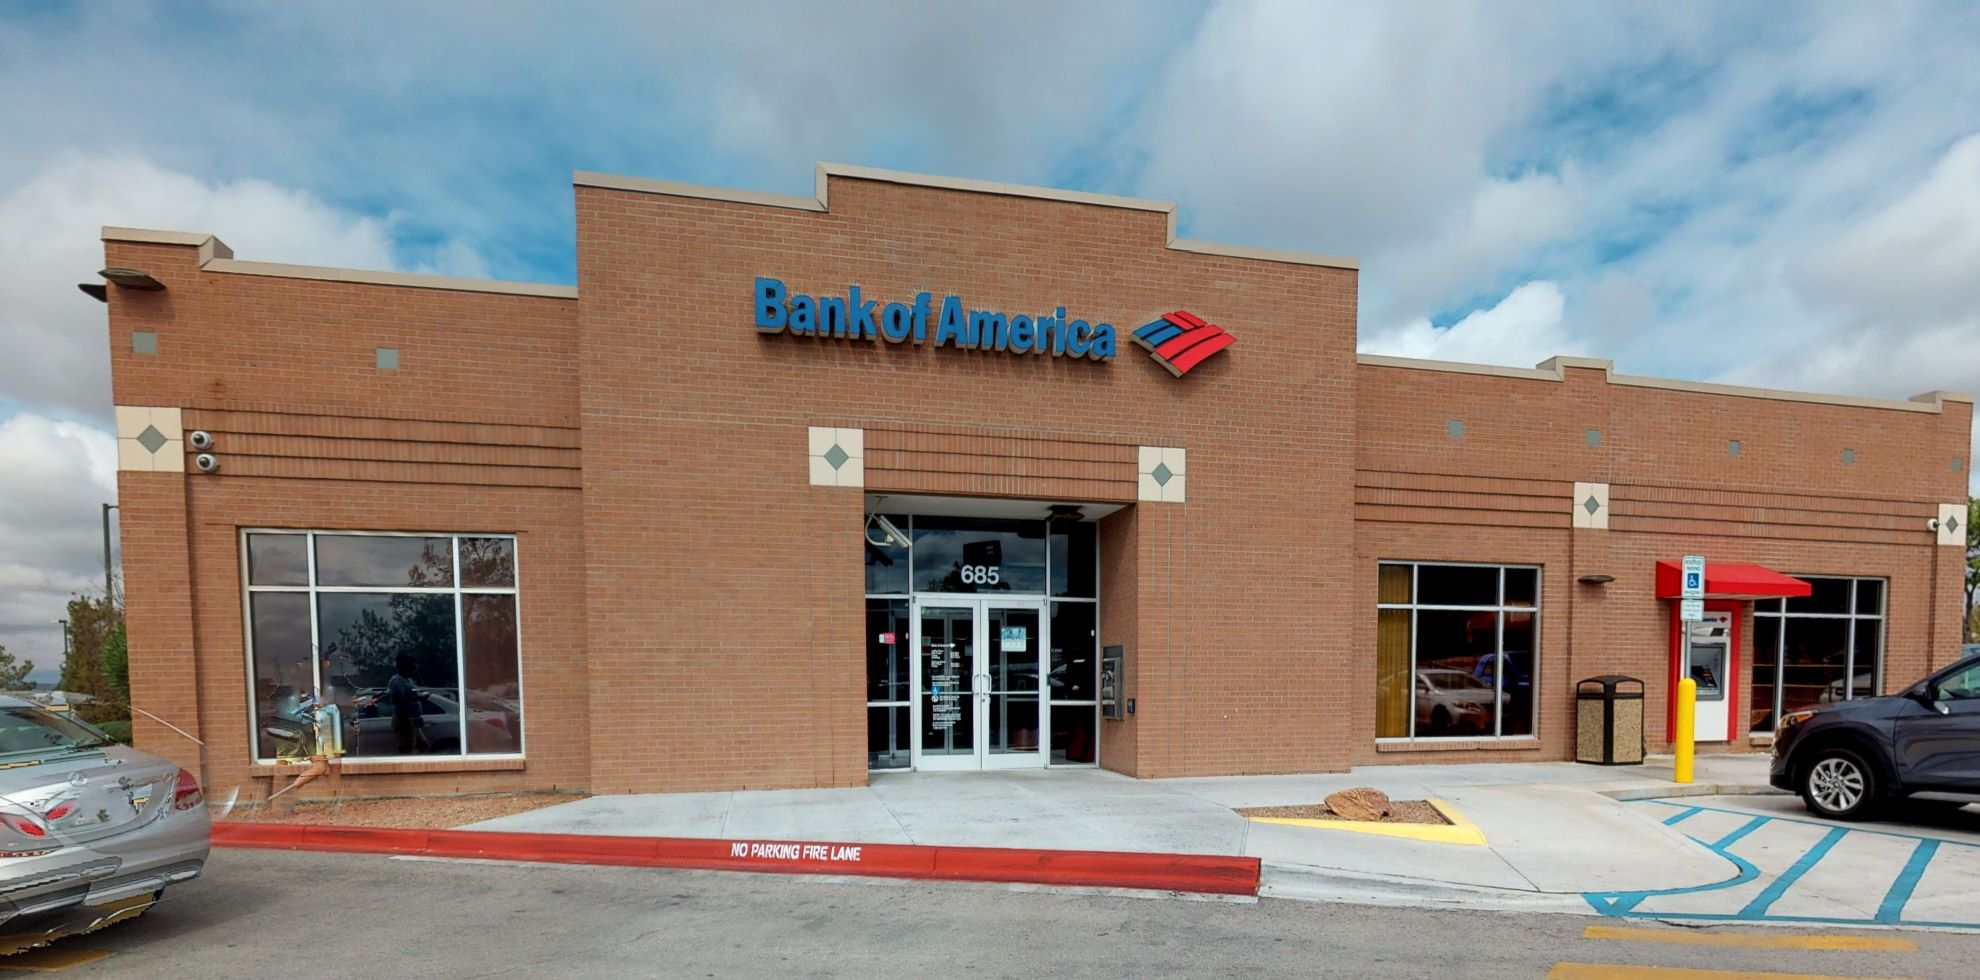 Bank of America financial center with drive-thru ATM and teller | 685 Sunland Park Dr, El Paso, TX 79912